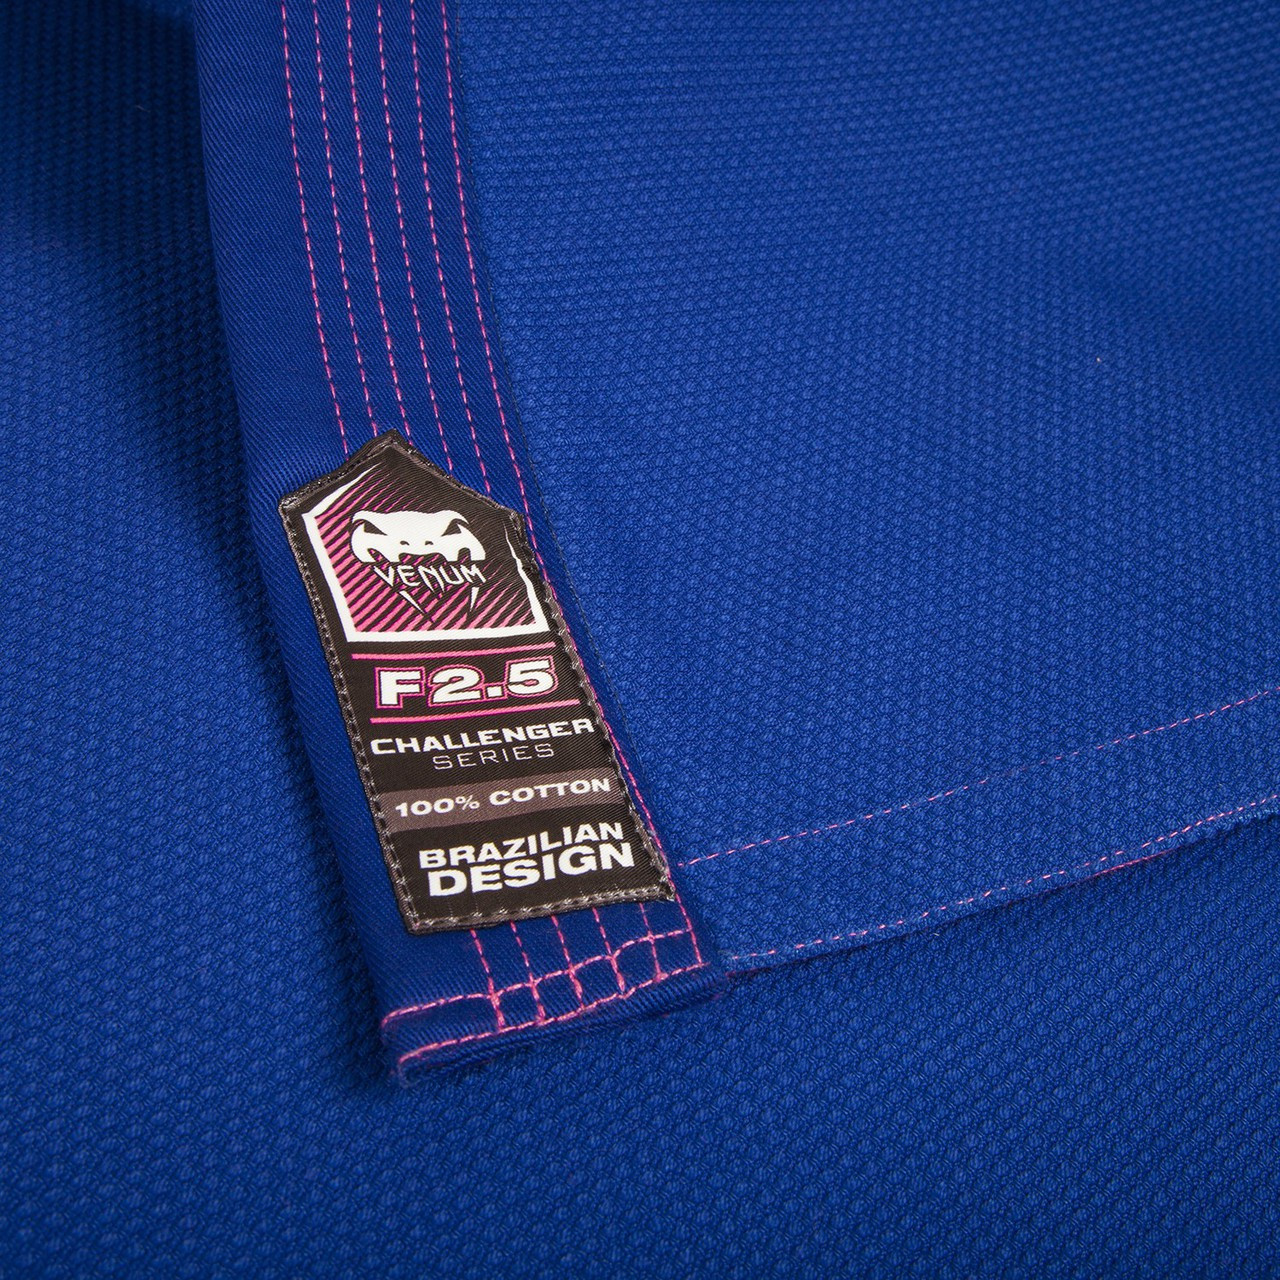 Venum Challenger 2.0 Female Gi Blue and pink.  The new Female challenger 2.0 gi is available in blue at www.thejiujitsushop.com   Enjoy free shipping from The Jiu Jitsu Shop.  Top BJJ gear from the best brands at low prices and free shipping for men, women and kids.